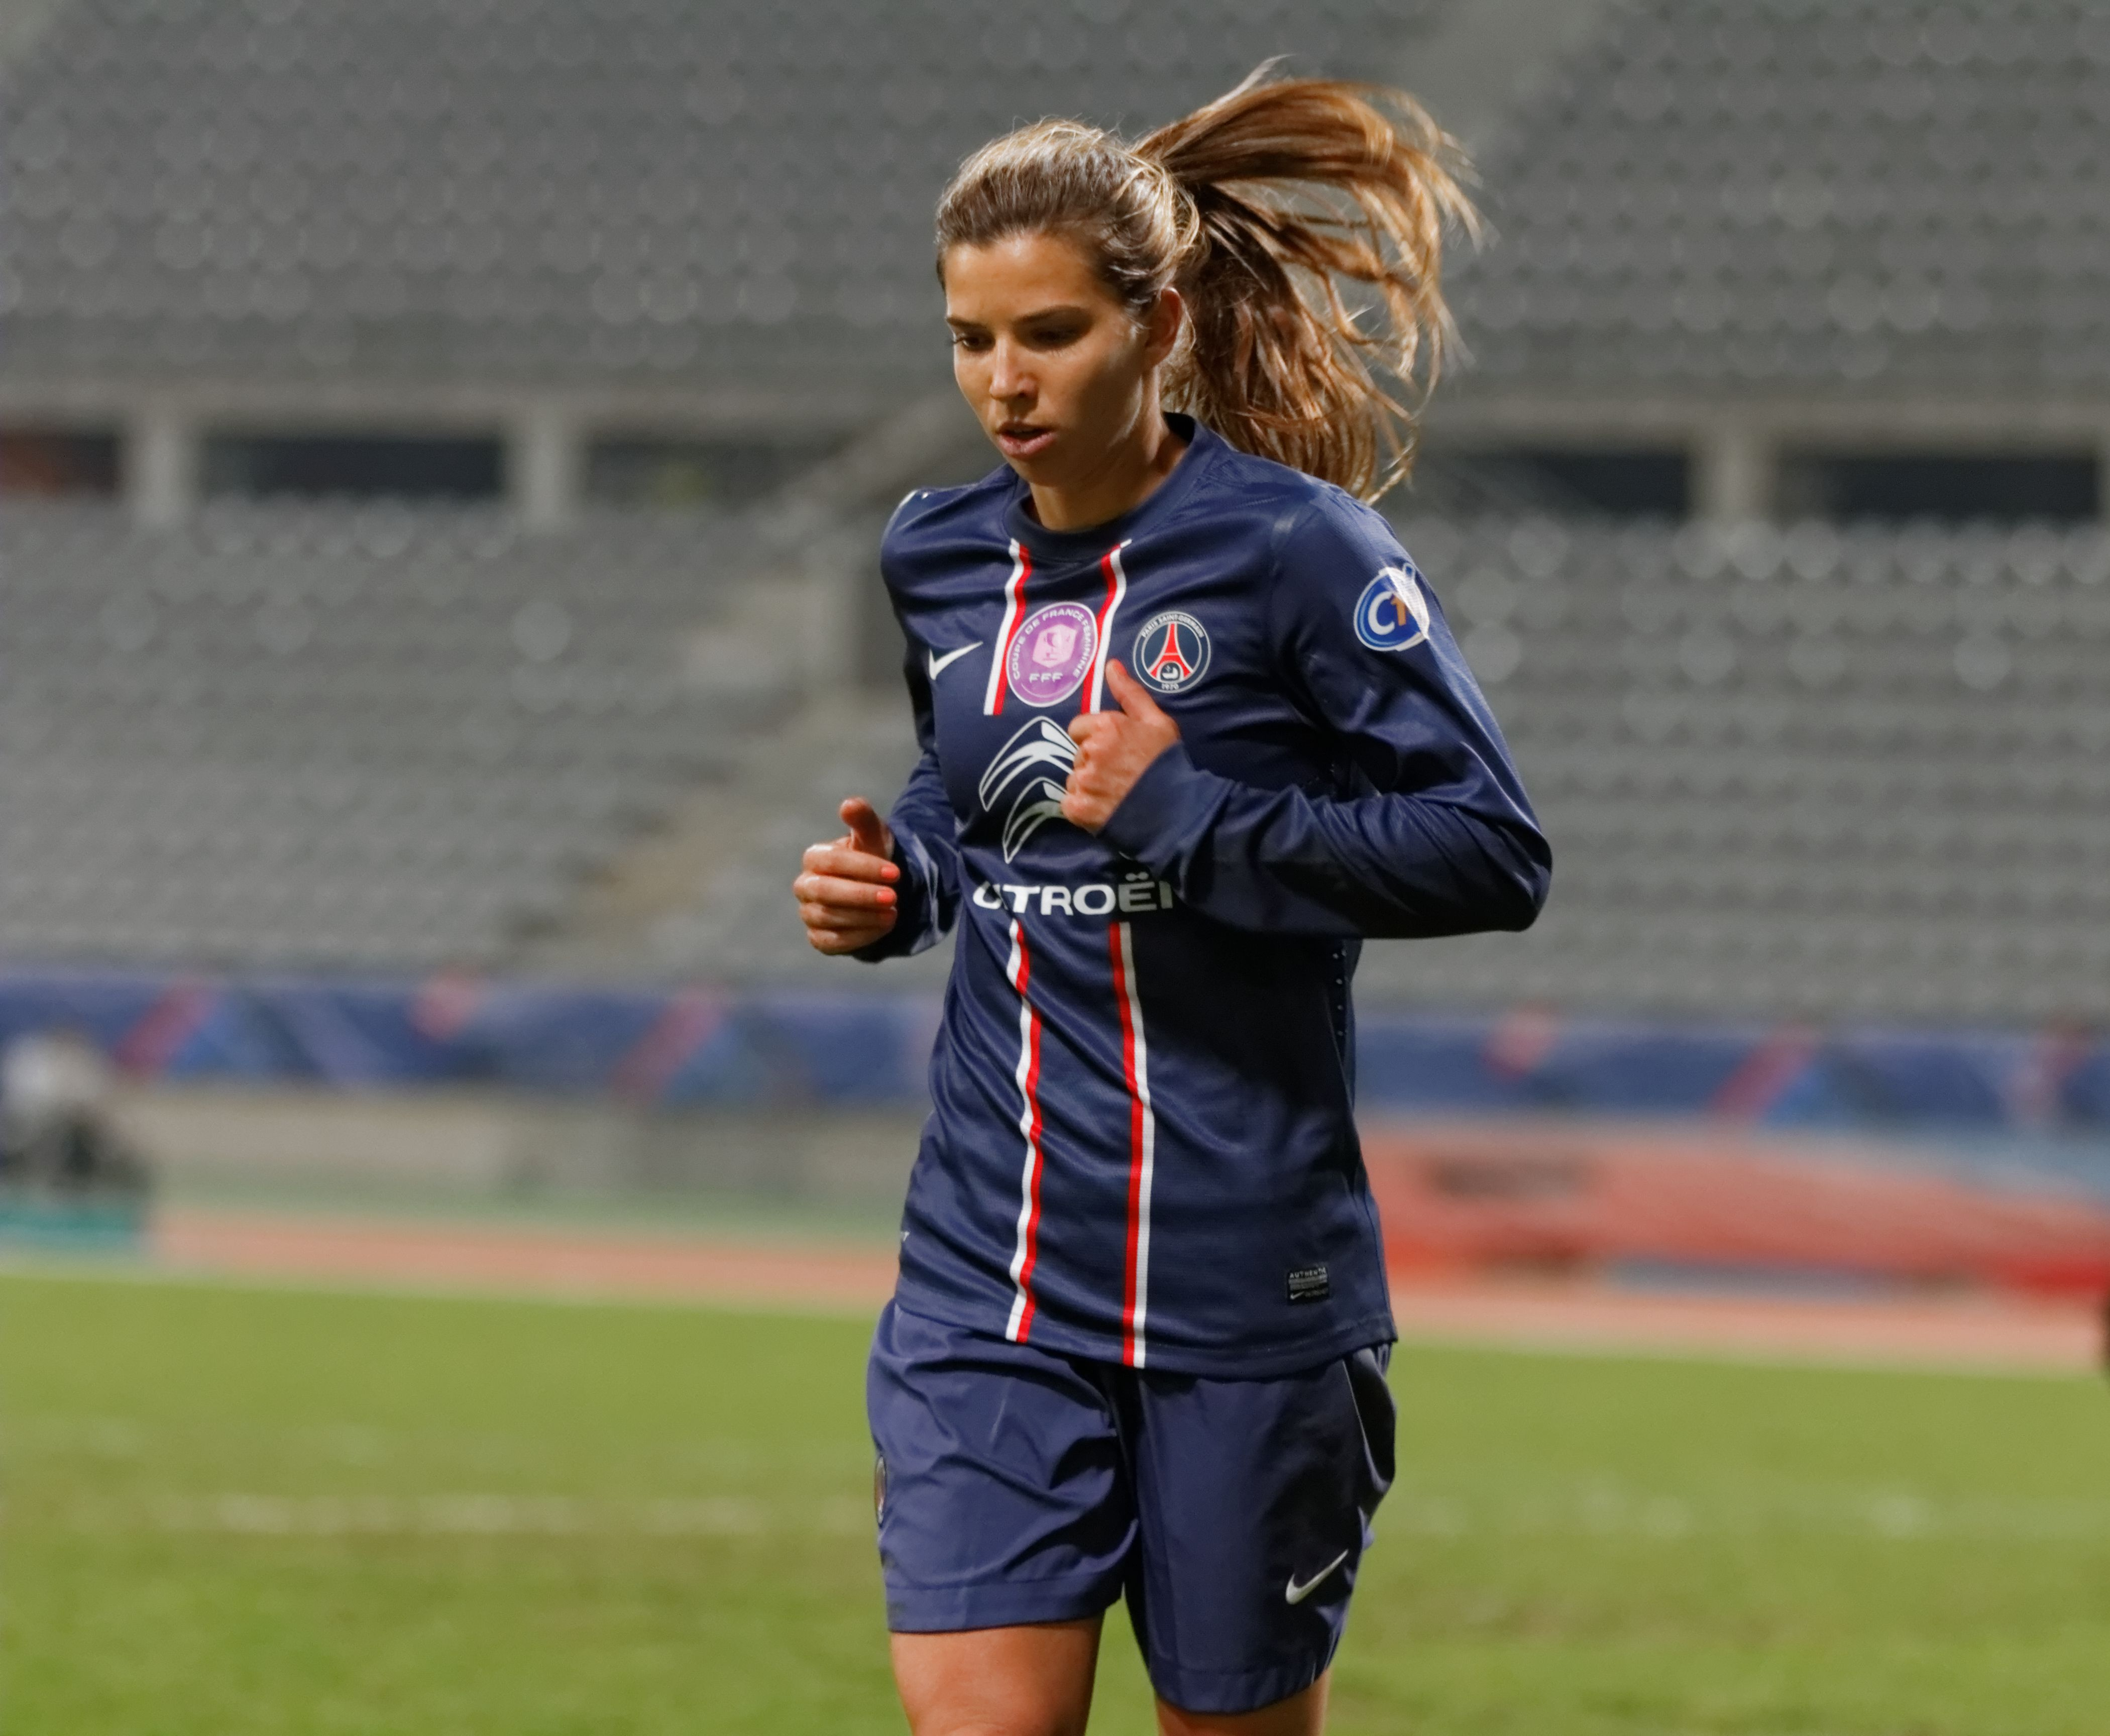 Tobin Heath playing for PSG